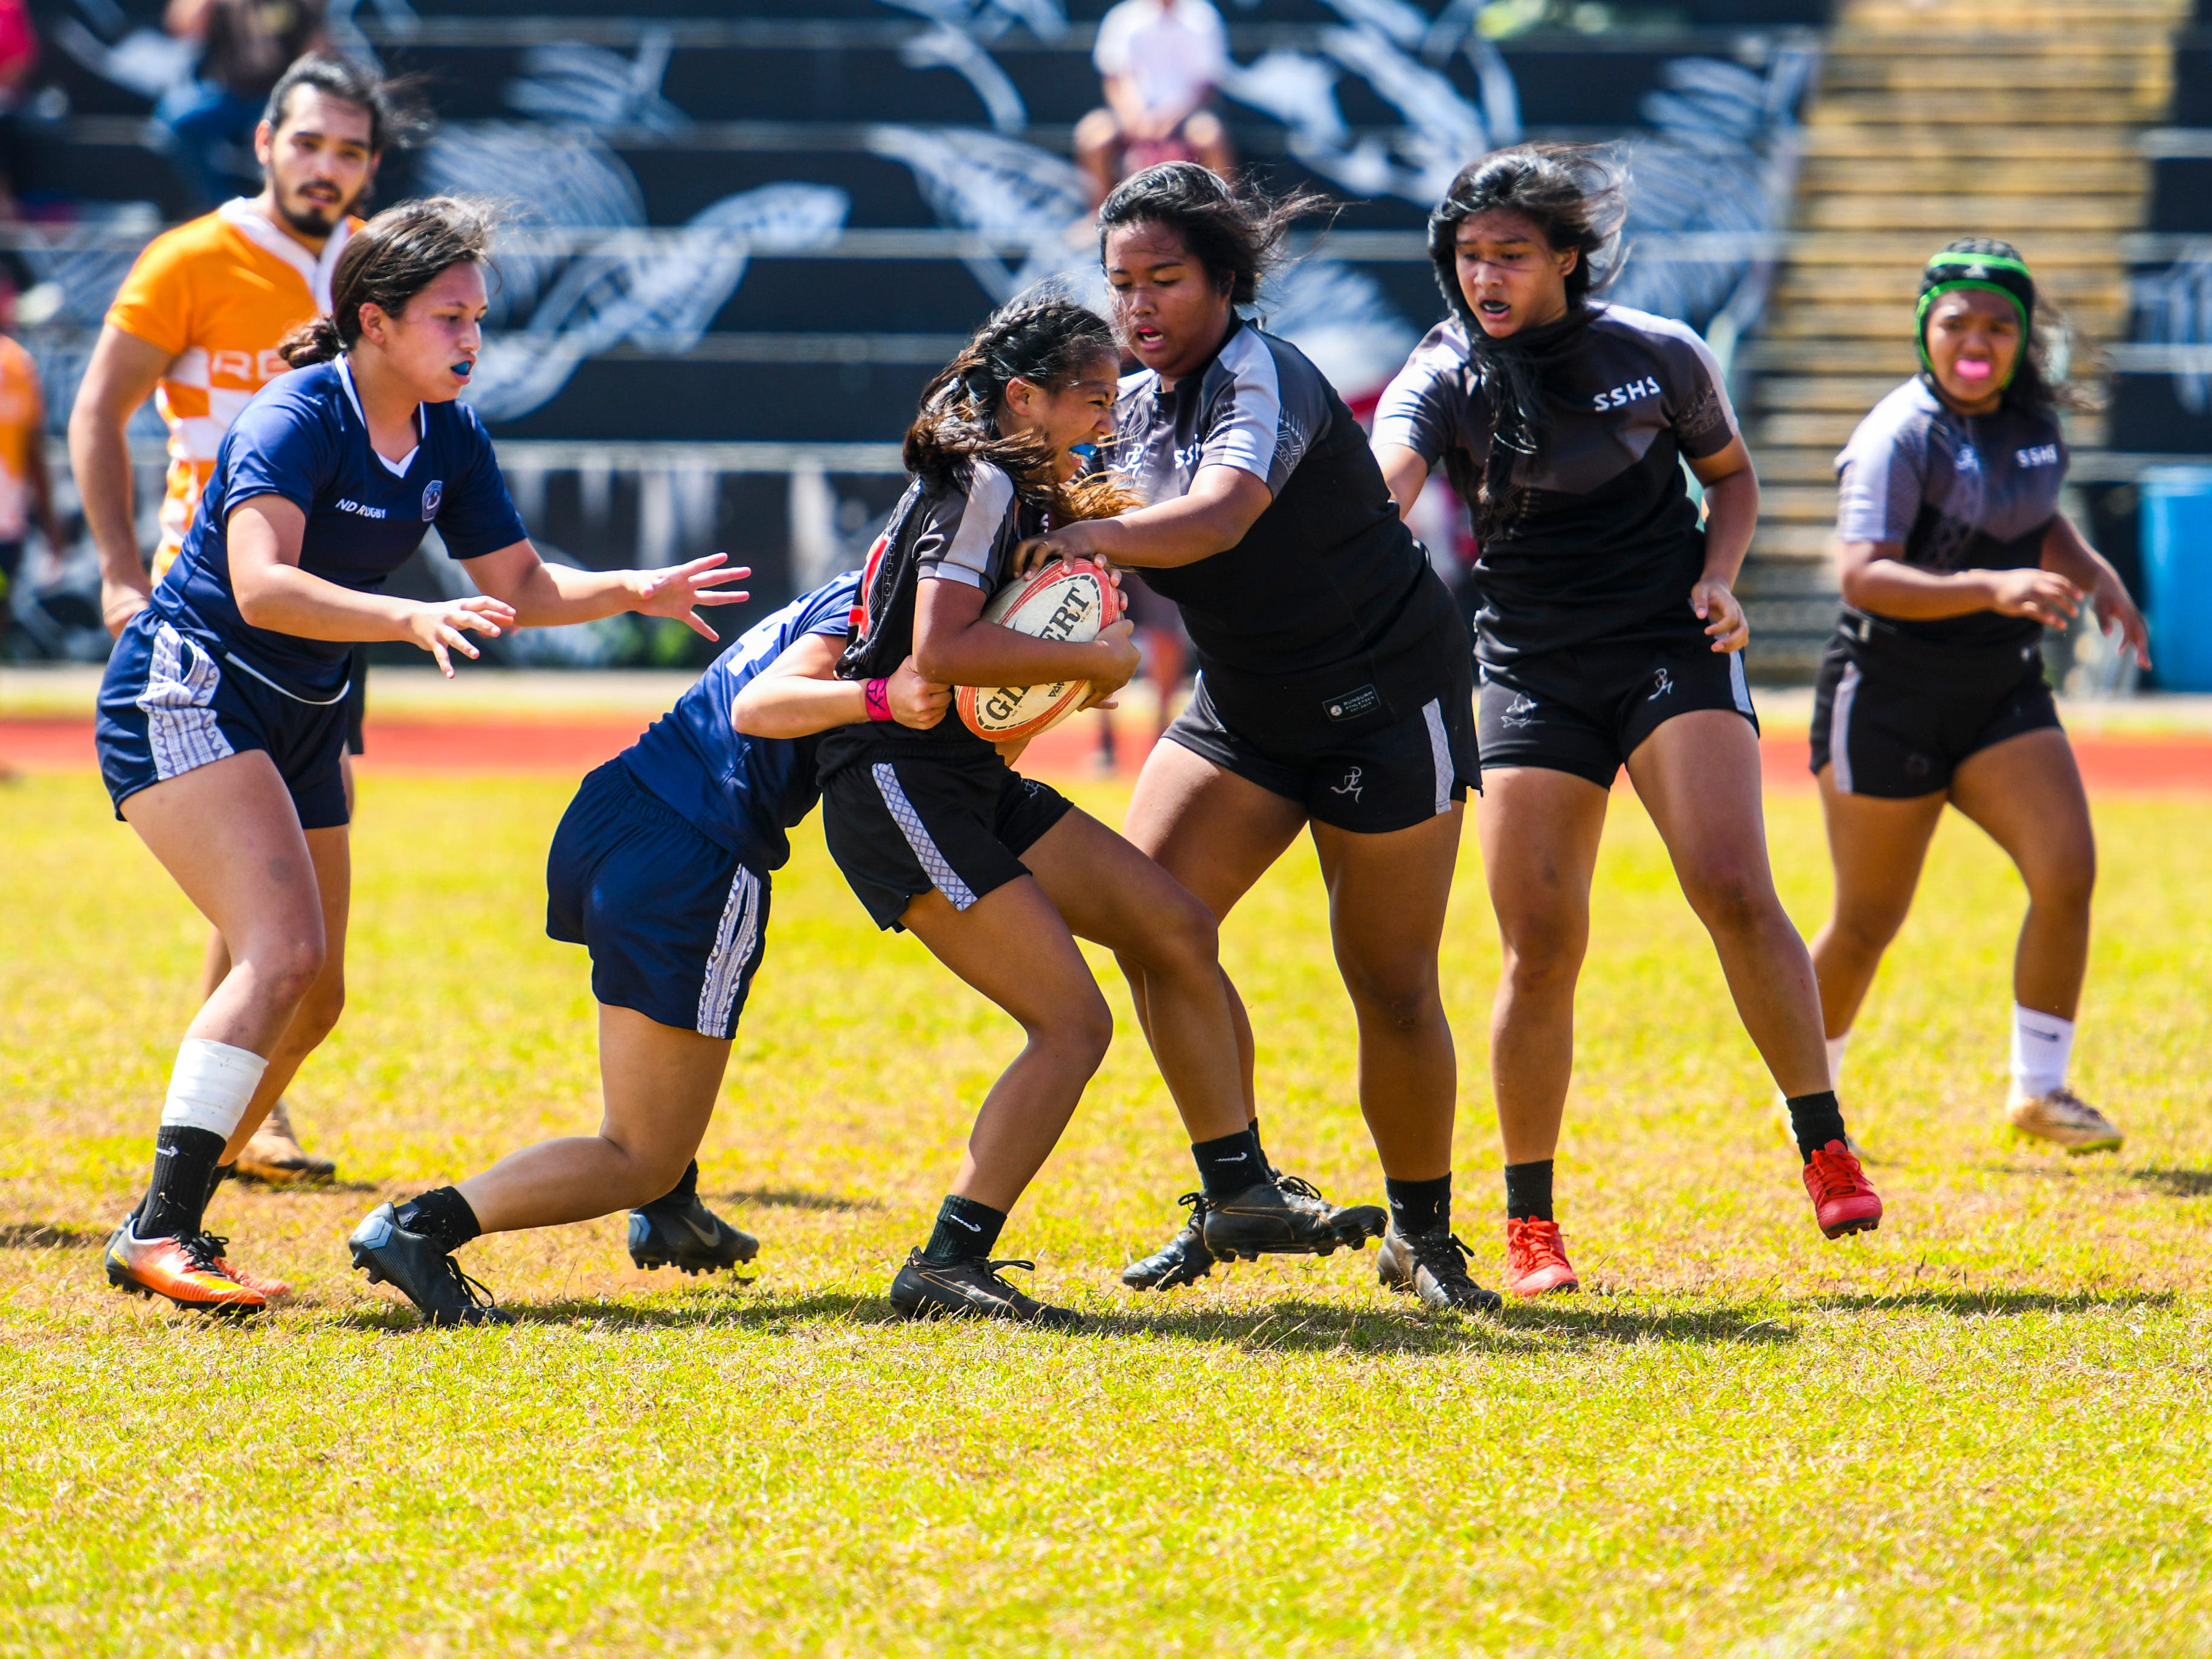 The Simon Sanchez High School Sharks competes against the Notre Dame High School Royals during their Girls Varsity IIAAG/GRFU rugby matchup on Ramsey Field at the John F. Kennedy High School in Tamuning on Saturday, March 9, 2019. In the end, the Royals defeated the Sharks with a final score of 14-12.